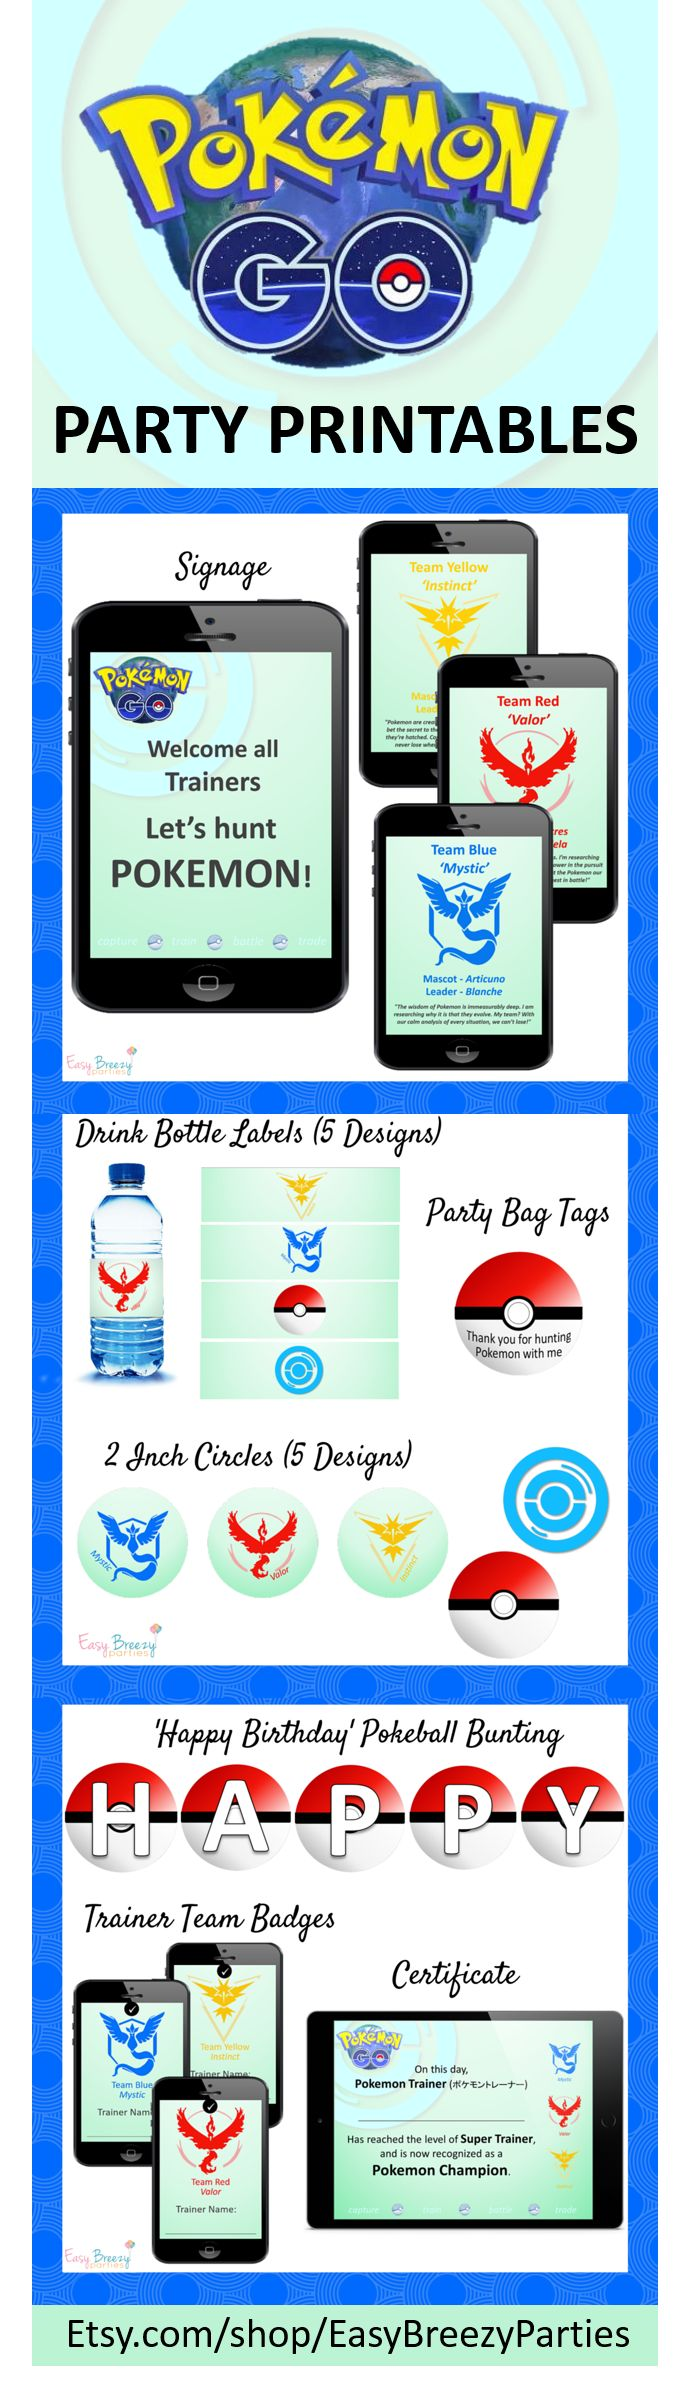 Poke-perfect Pokemon Go party printable set, featuring invitation, signage, Team ID badges, drink bottle labels, bag tags, pokeball bunting, pokestops, bonus trainer certificate. Instant download from https://www.etsy.com/listing/455305820/pokemon-go-2016-party-printable-pack?ref=shop_home_feat_4